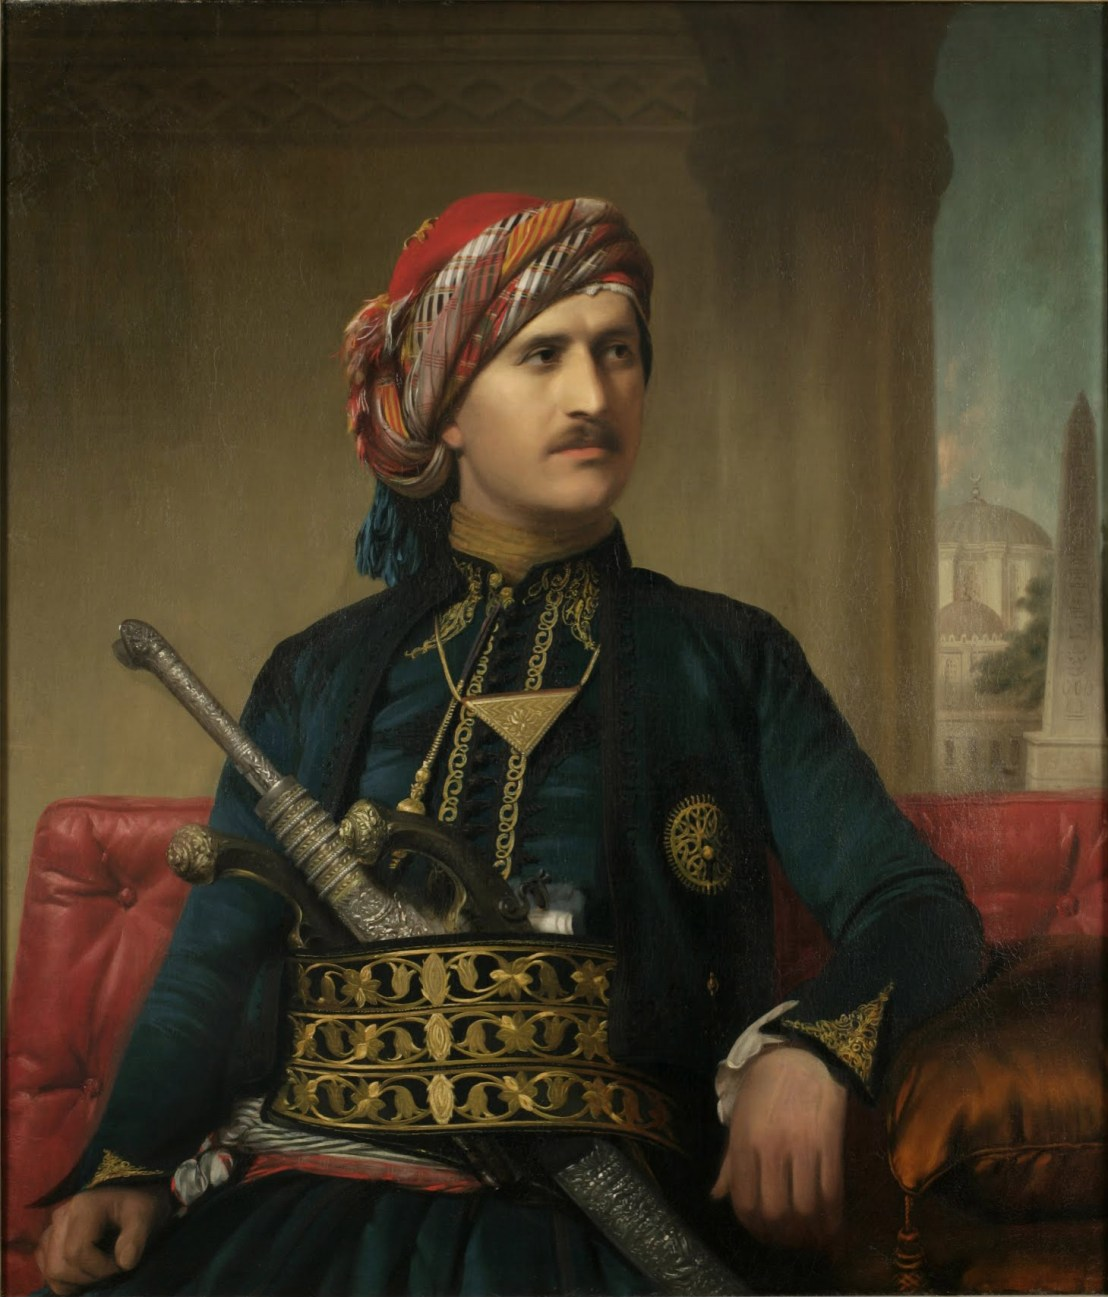 Armenian man from the Ottoman empire by Edward Ludlow Mooney (1848-1849)